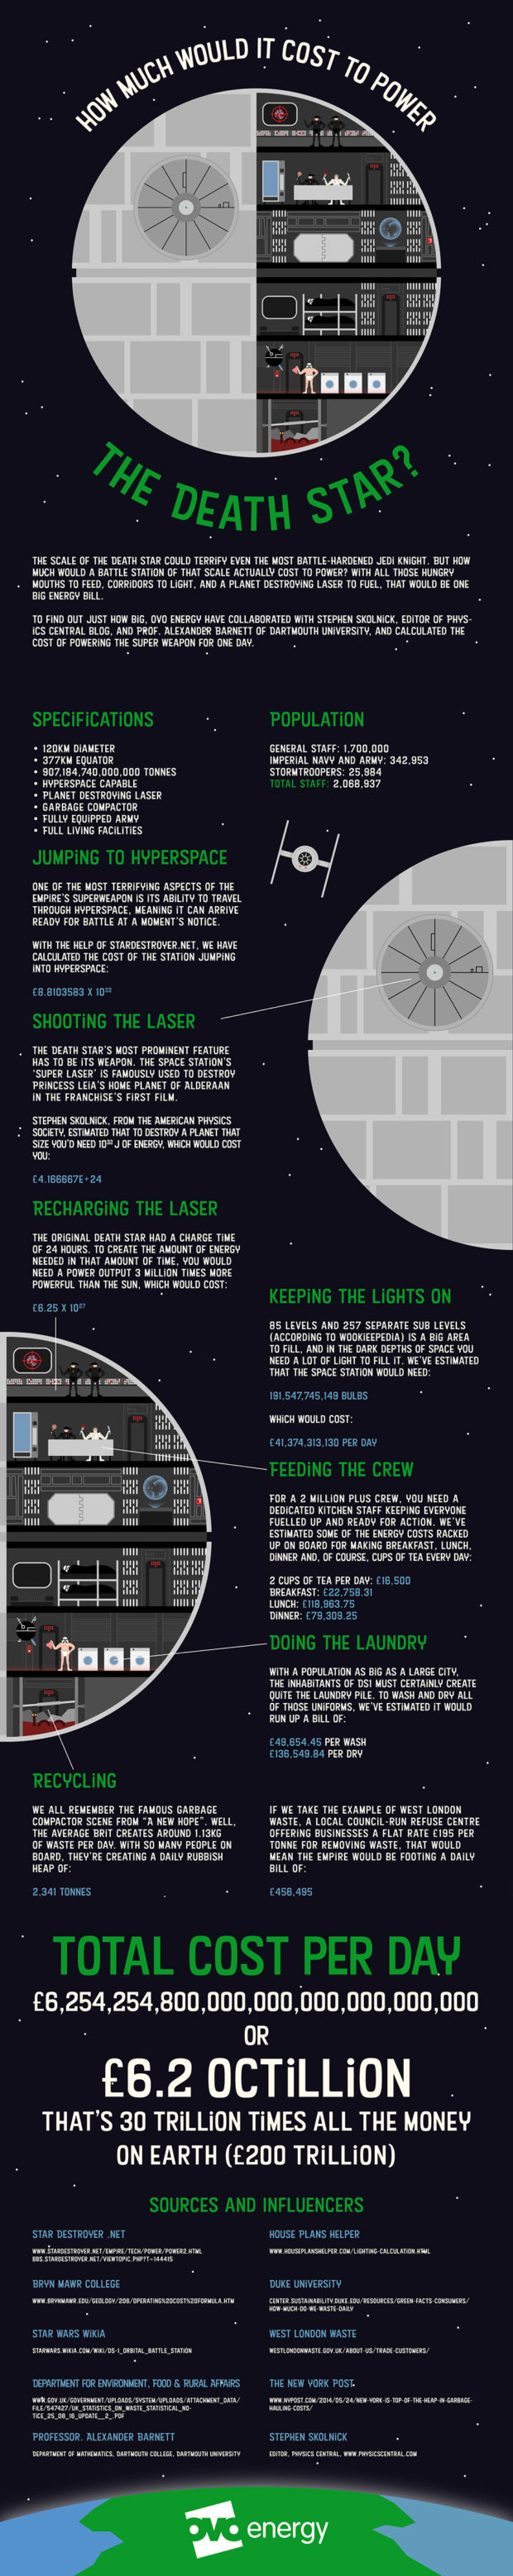 death_star_costs_2